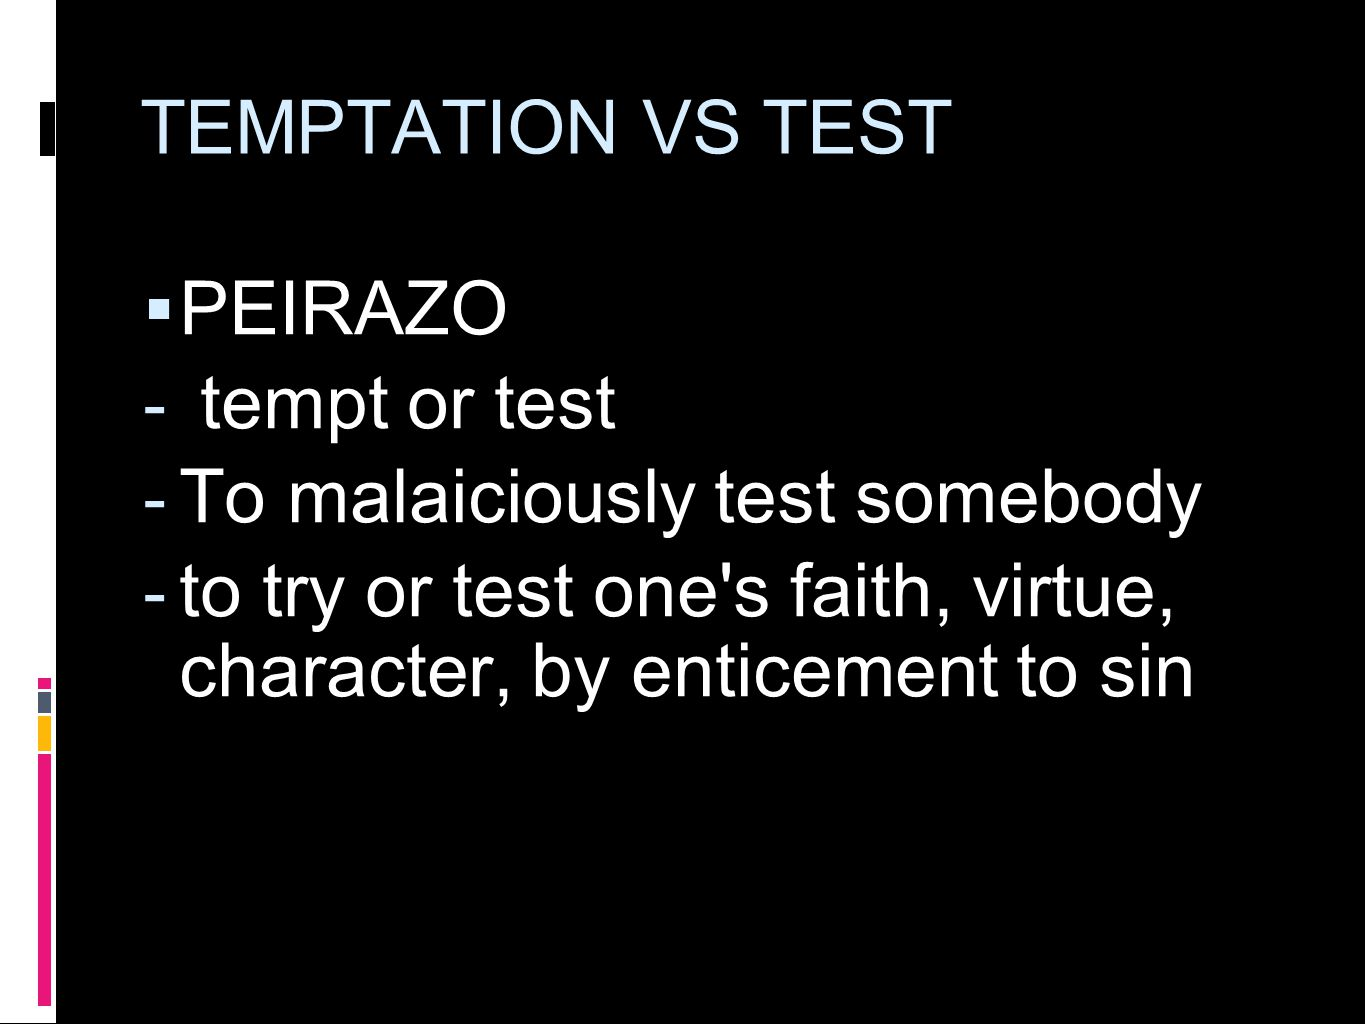 TEMPTATION VS TEST  PEIRAZO  tempt or test  To malaiciously test somebody  to try or test one's faith, virtue, character, by enticement to sin